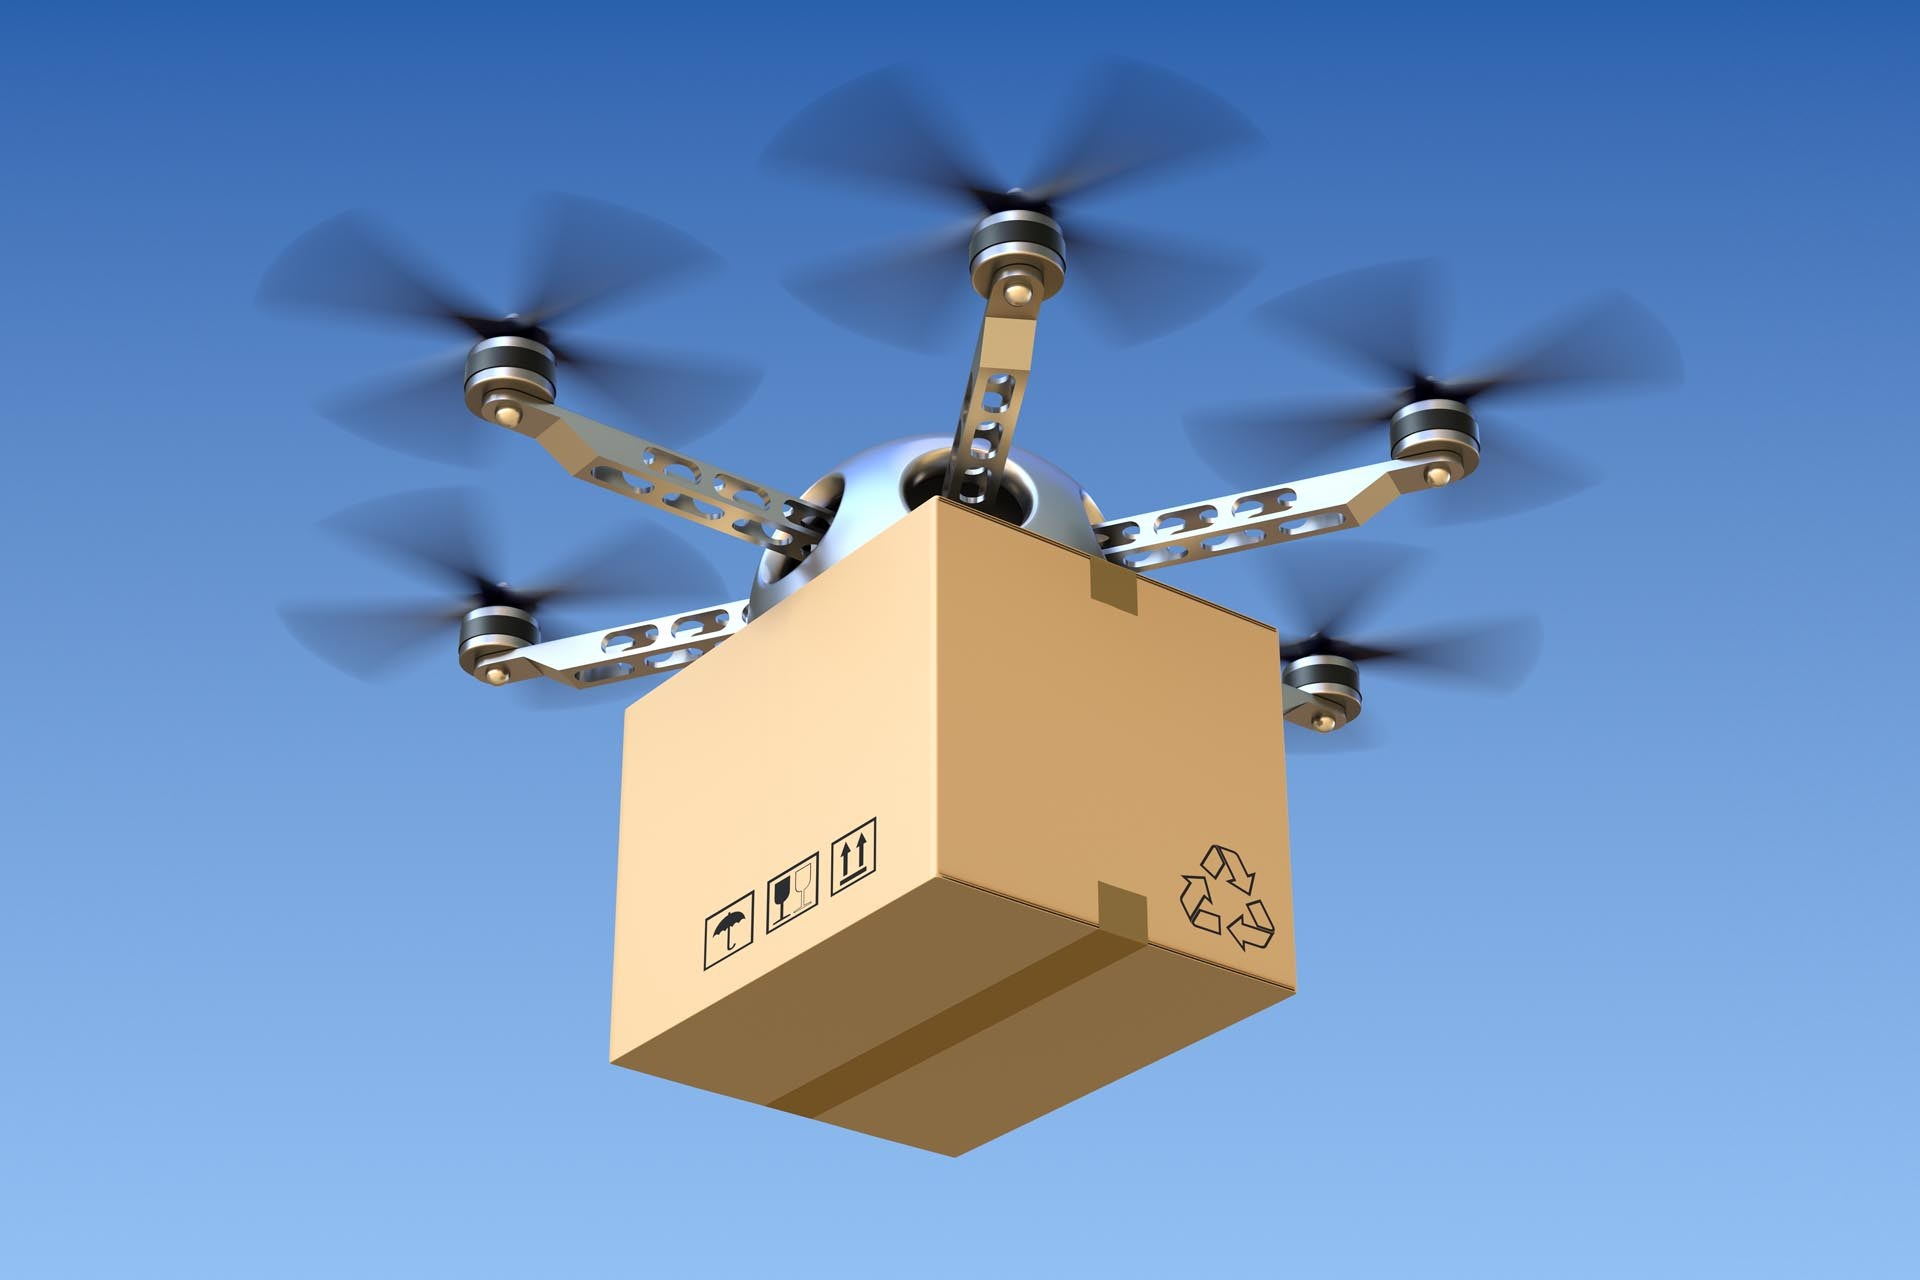 photo of a drone delivering a package